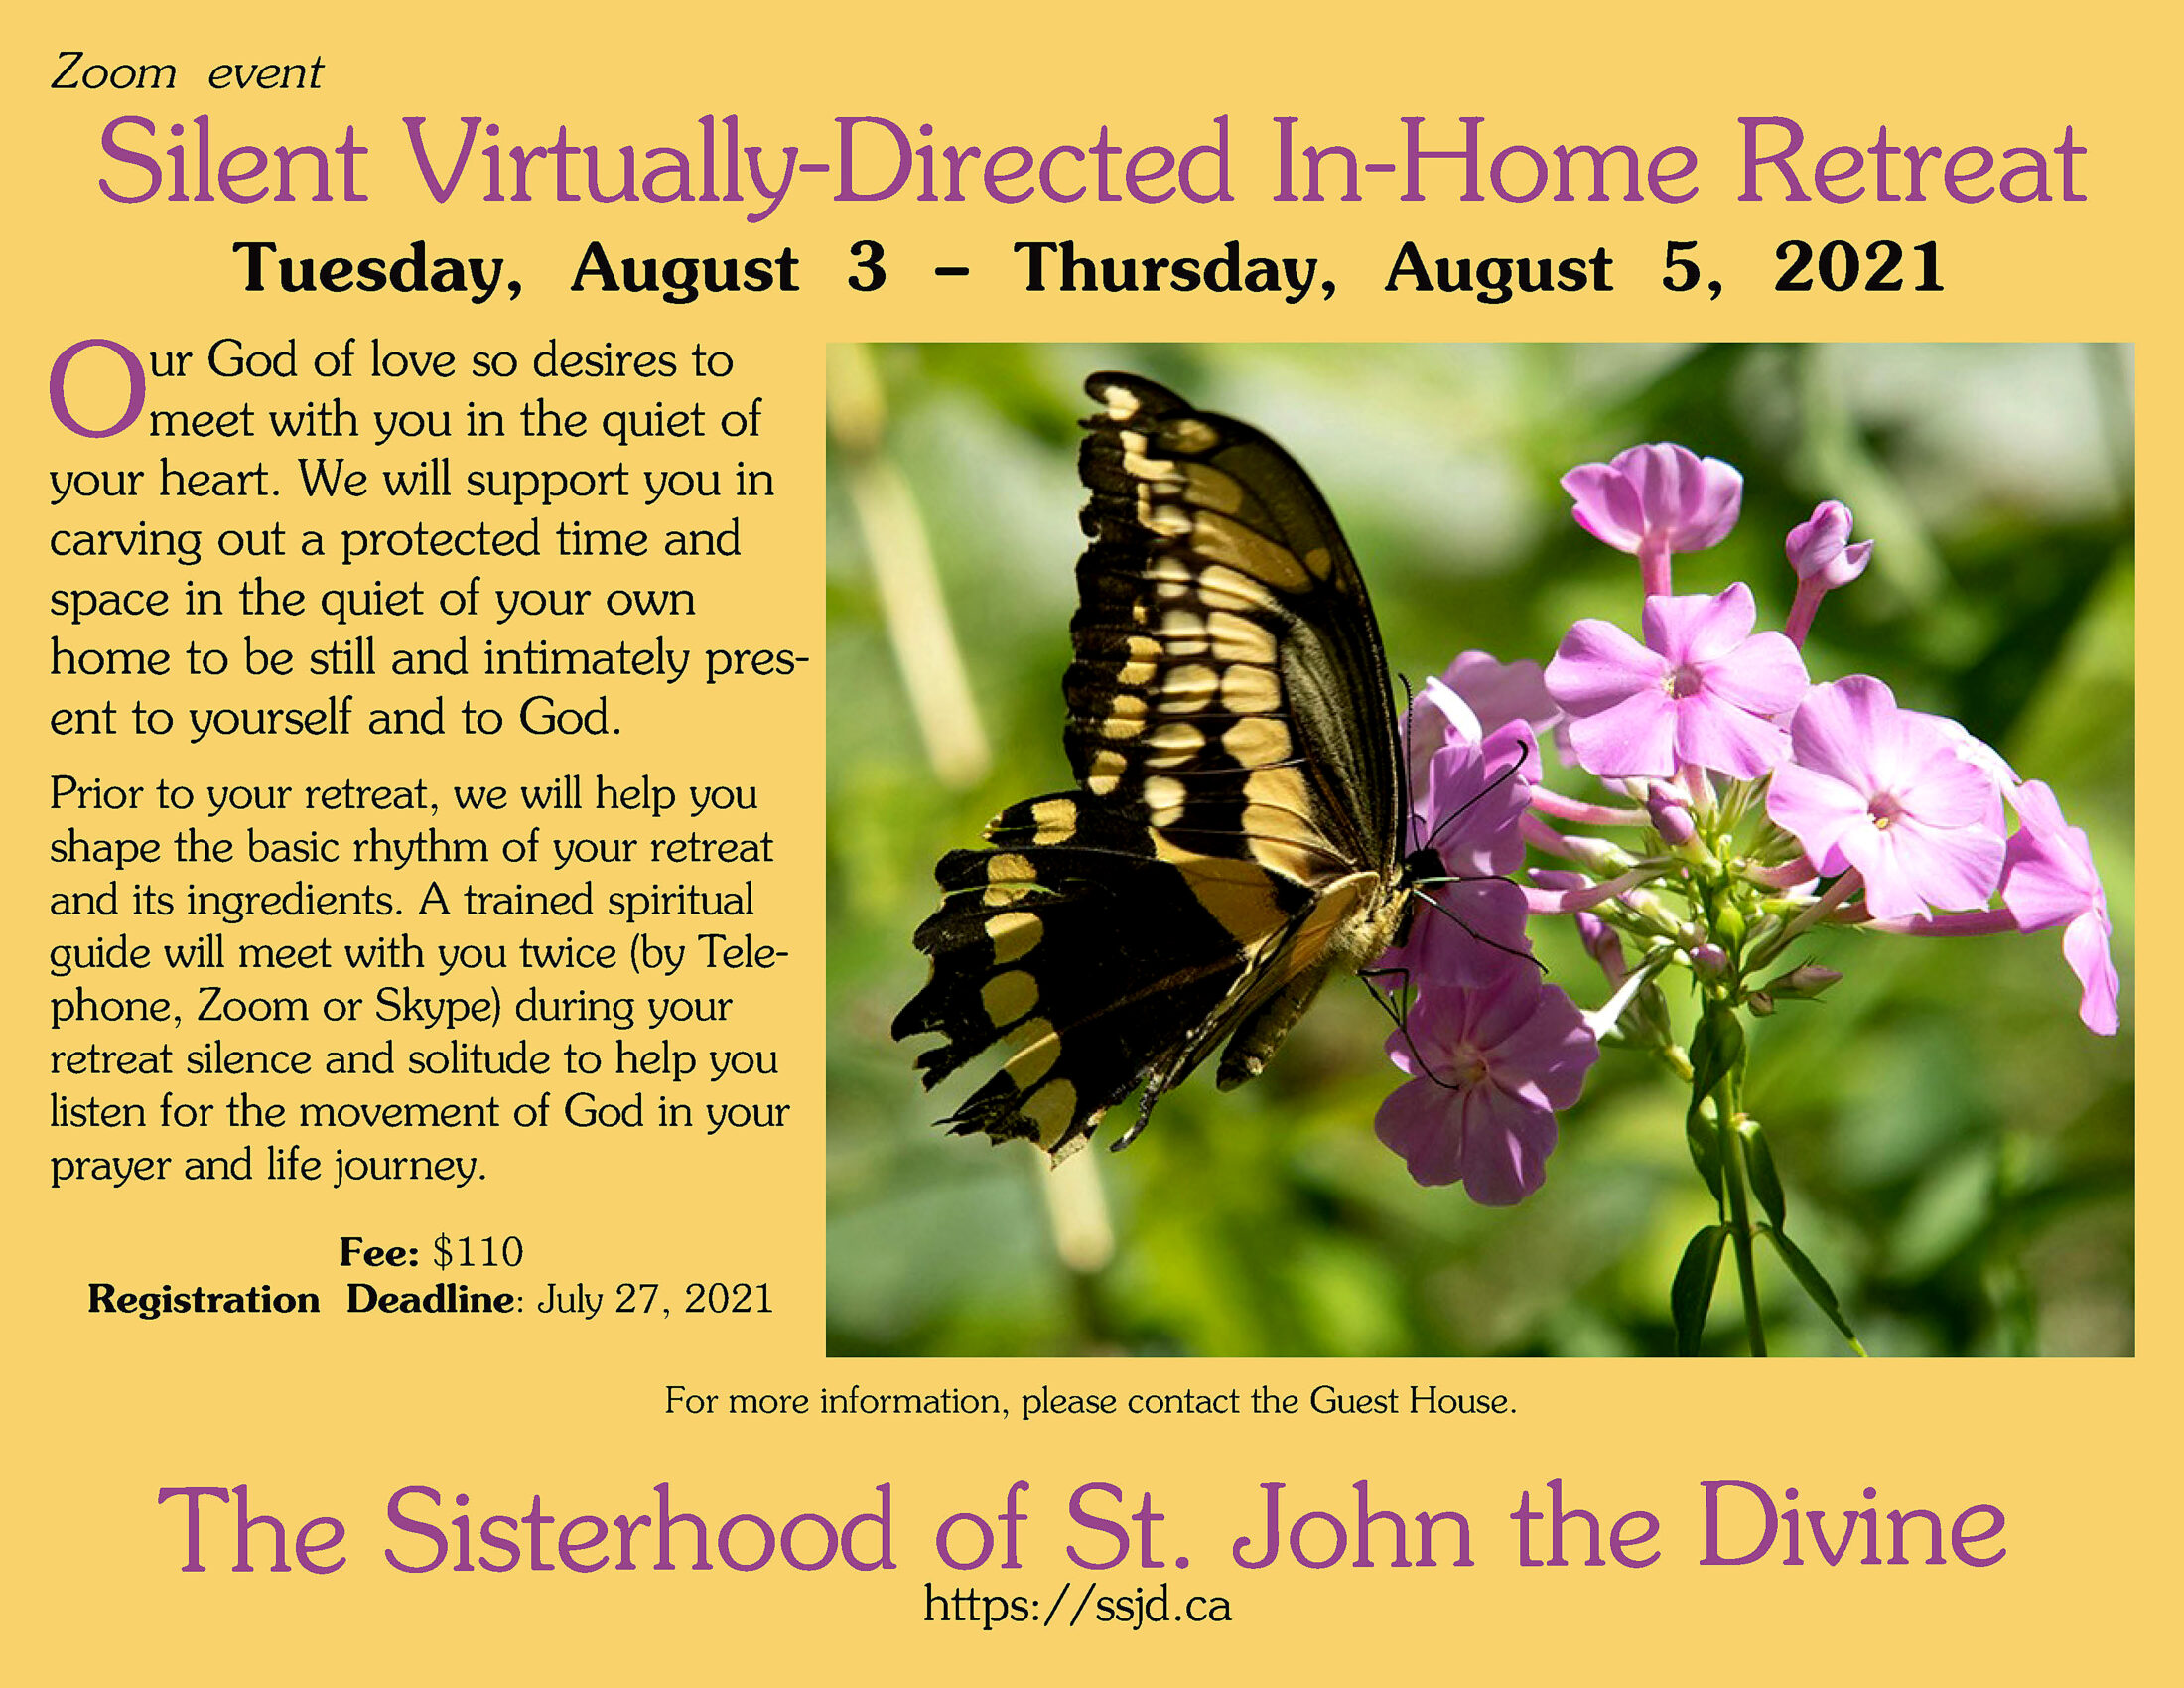 Silent Virtually- Directed In-Home Retreat